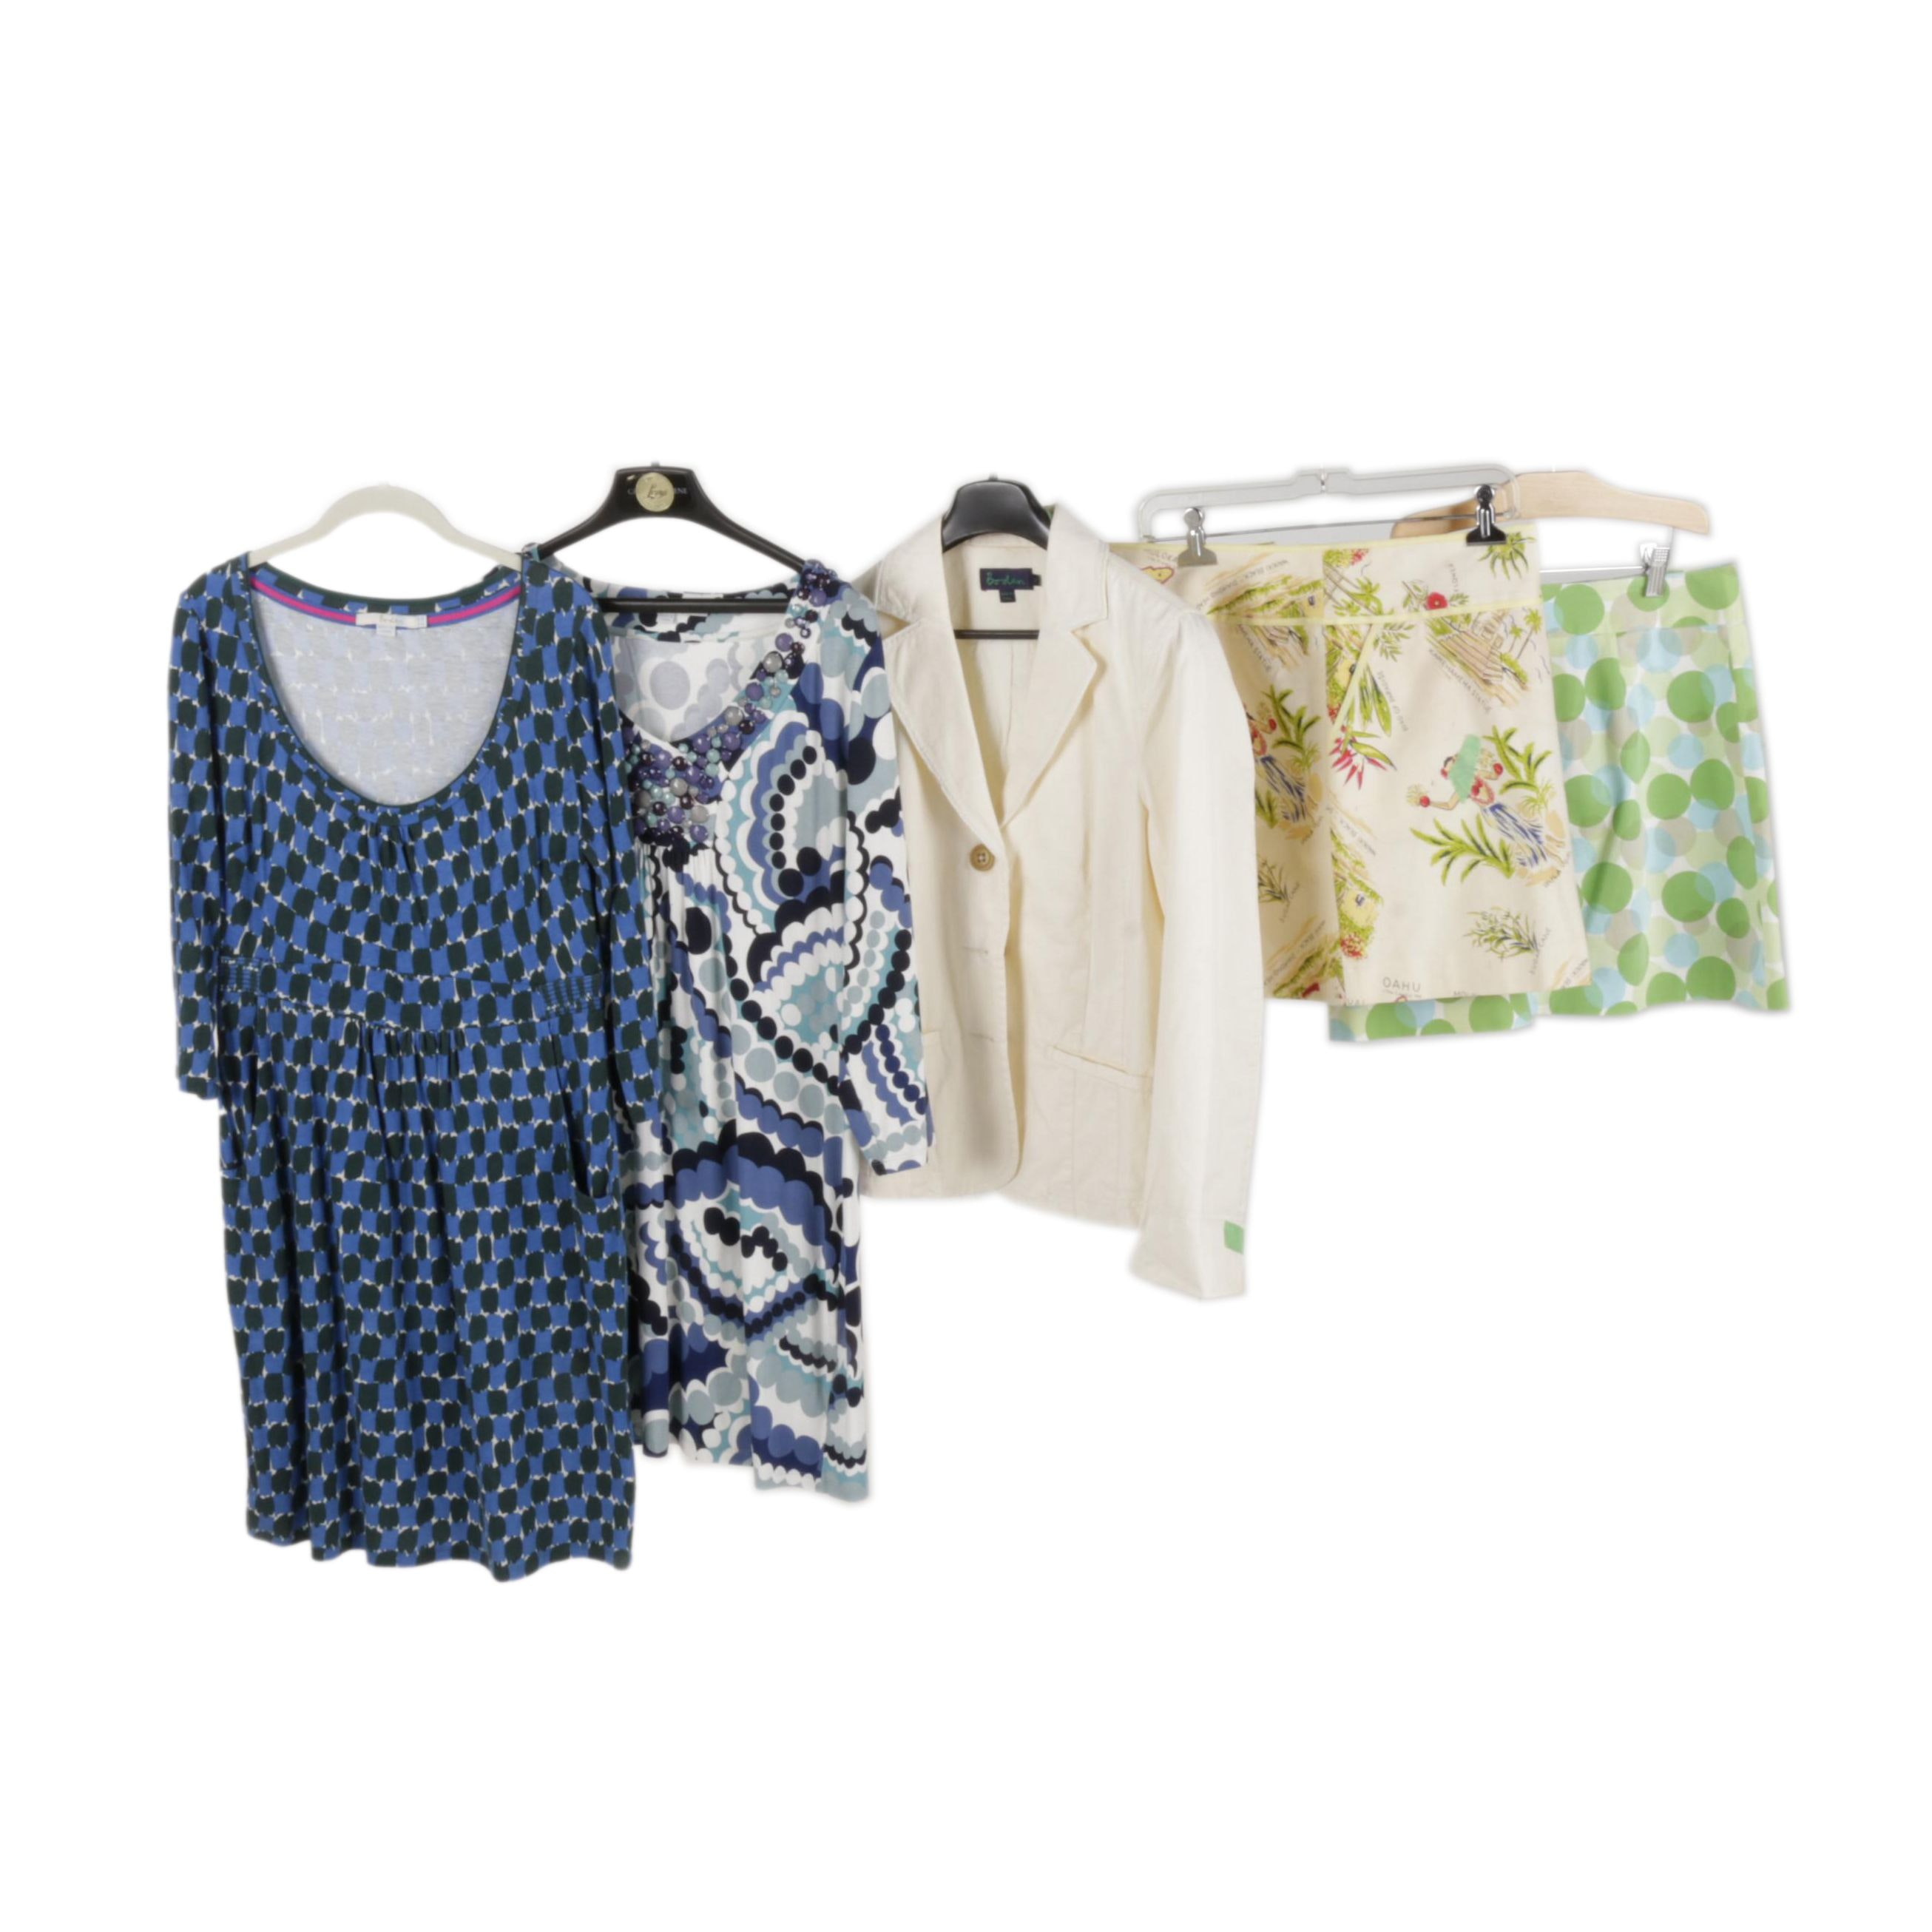 Women's Clothing Including J.Crew and Boden